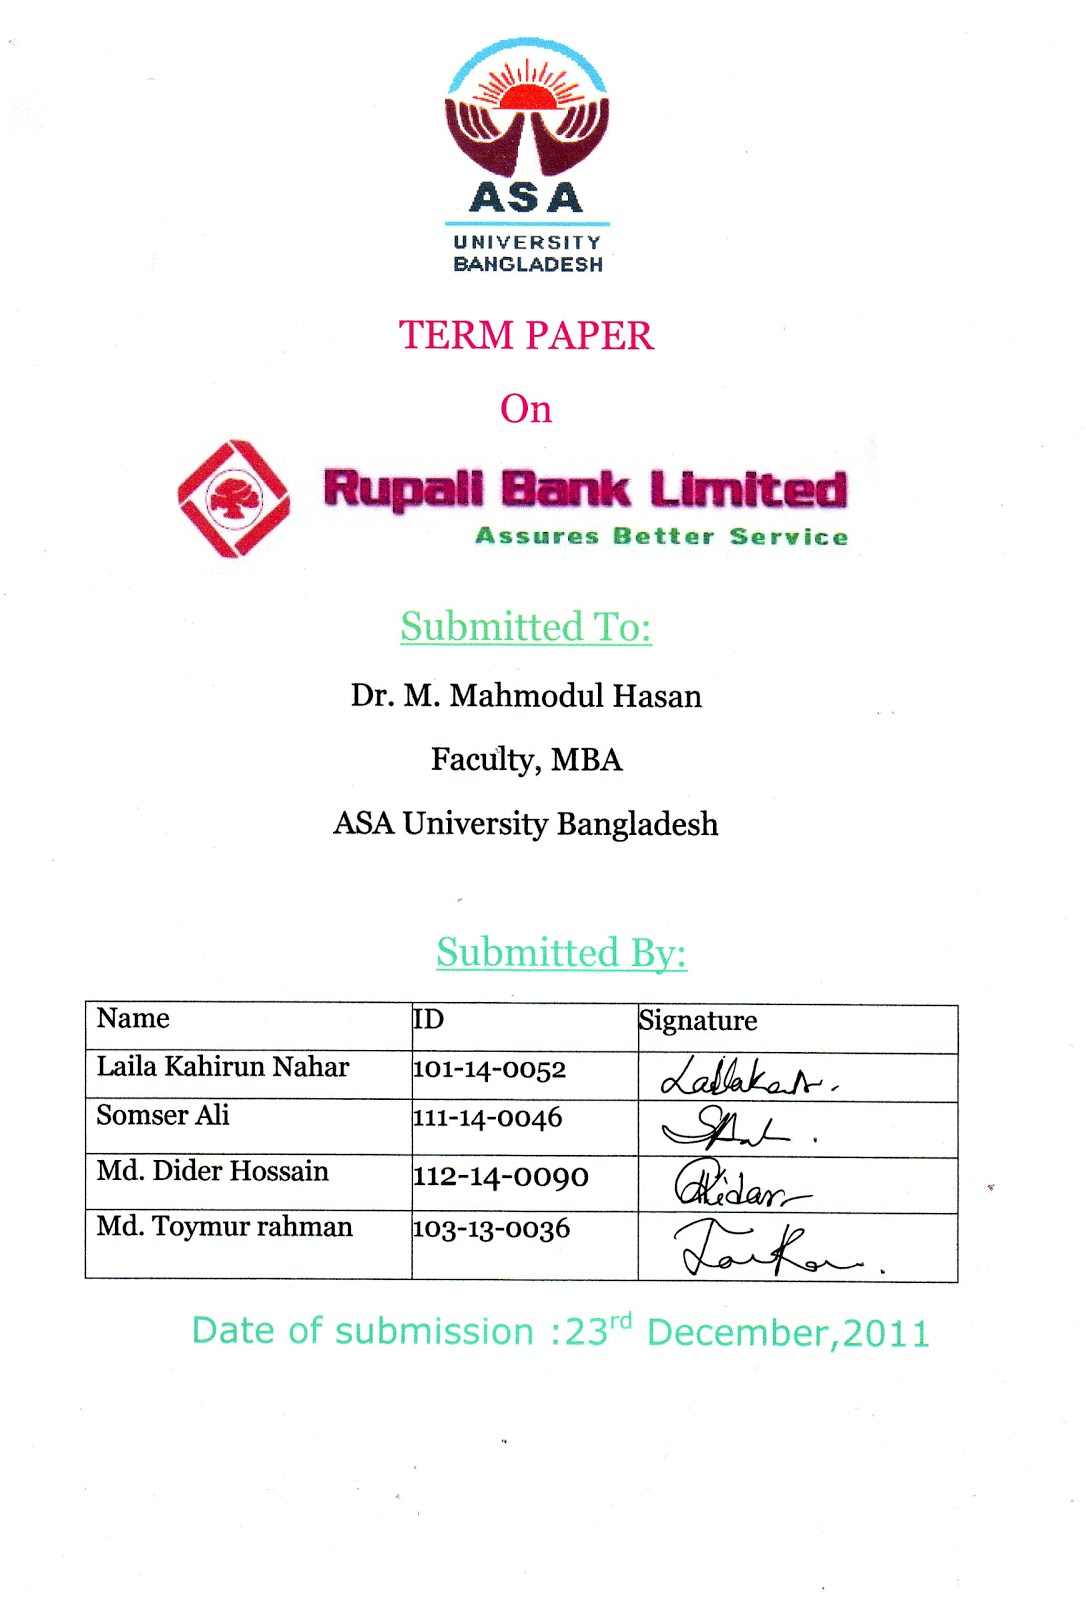 term papers on agrani bank bangladesh ltd Term paper thesis paper  later the management of agrani bank of bangladesh ltd, changed the name of the bank as agrani bank bangladesh ltd, the bank has got .